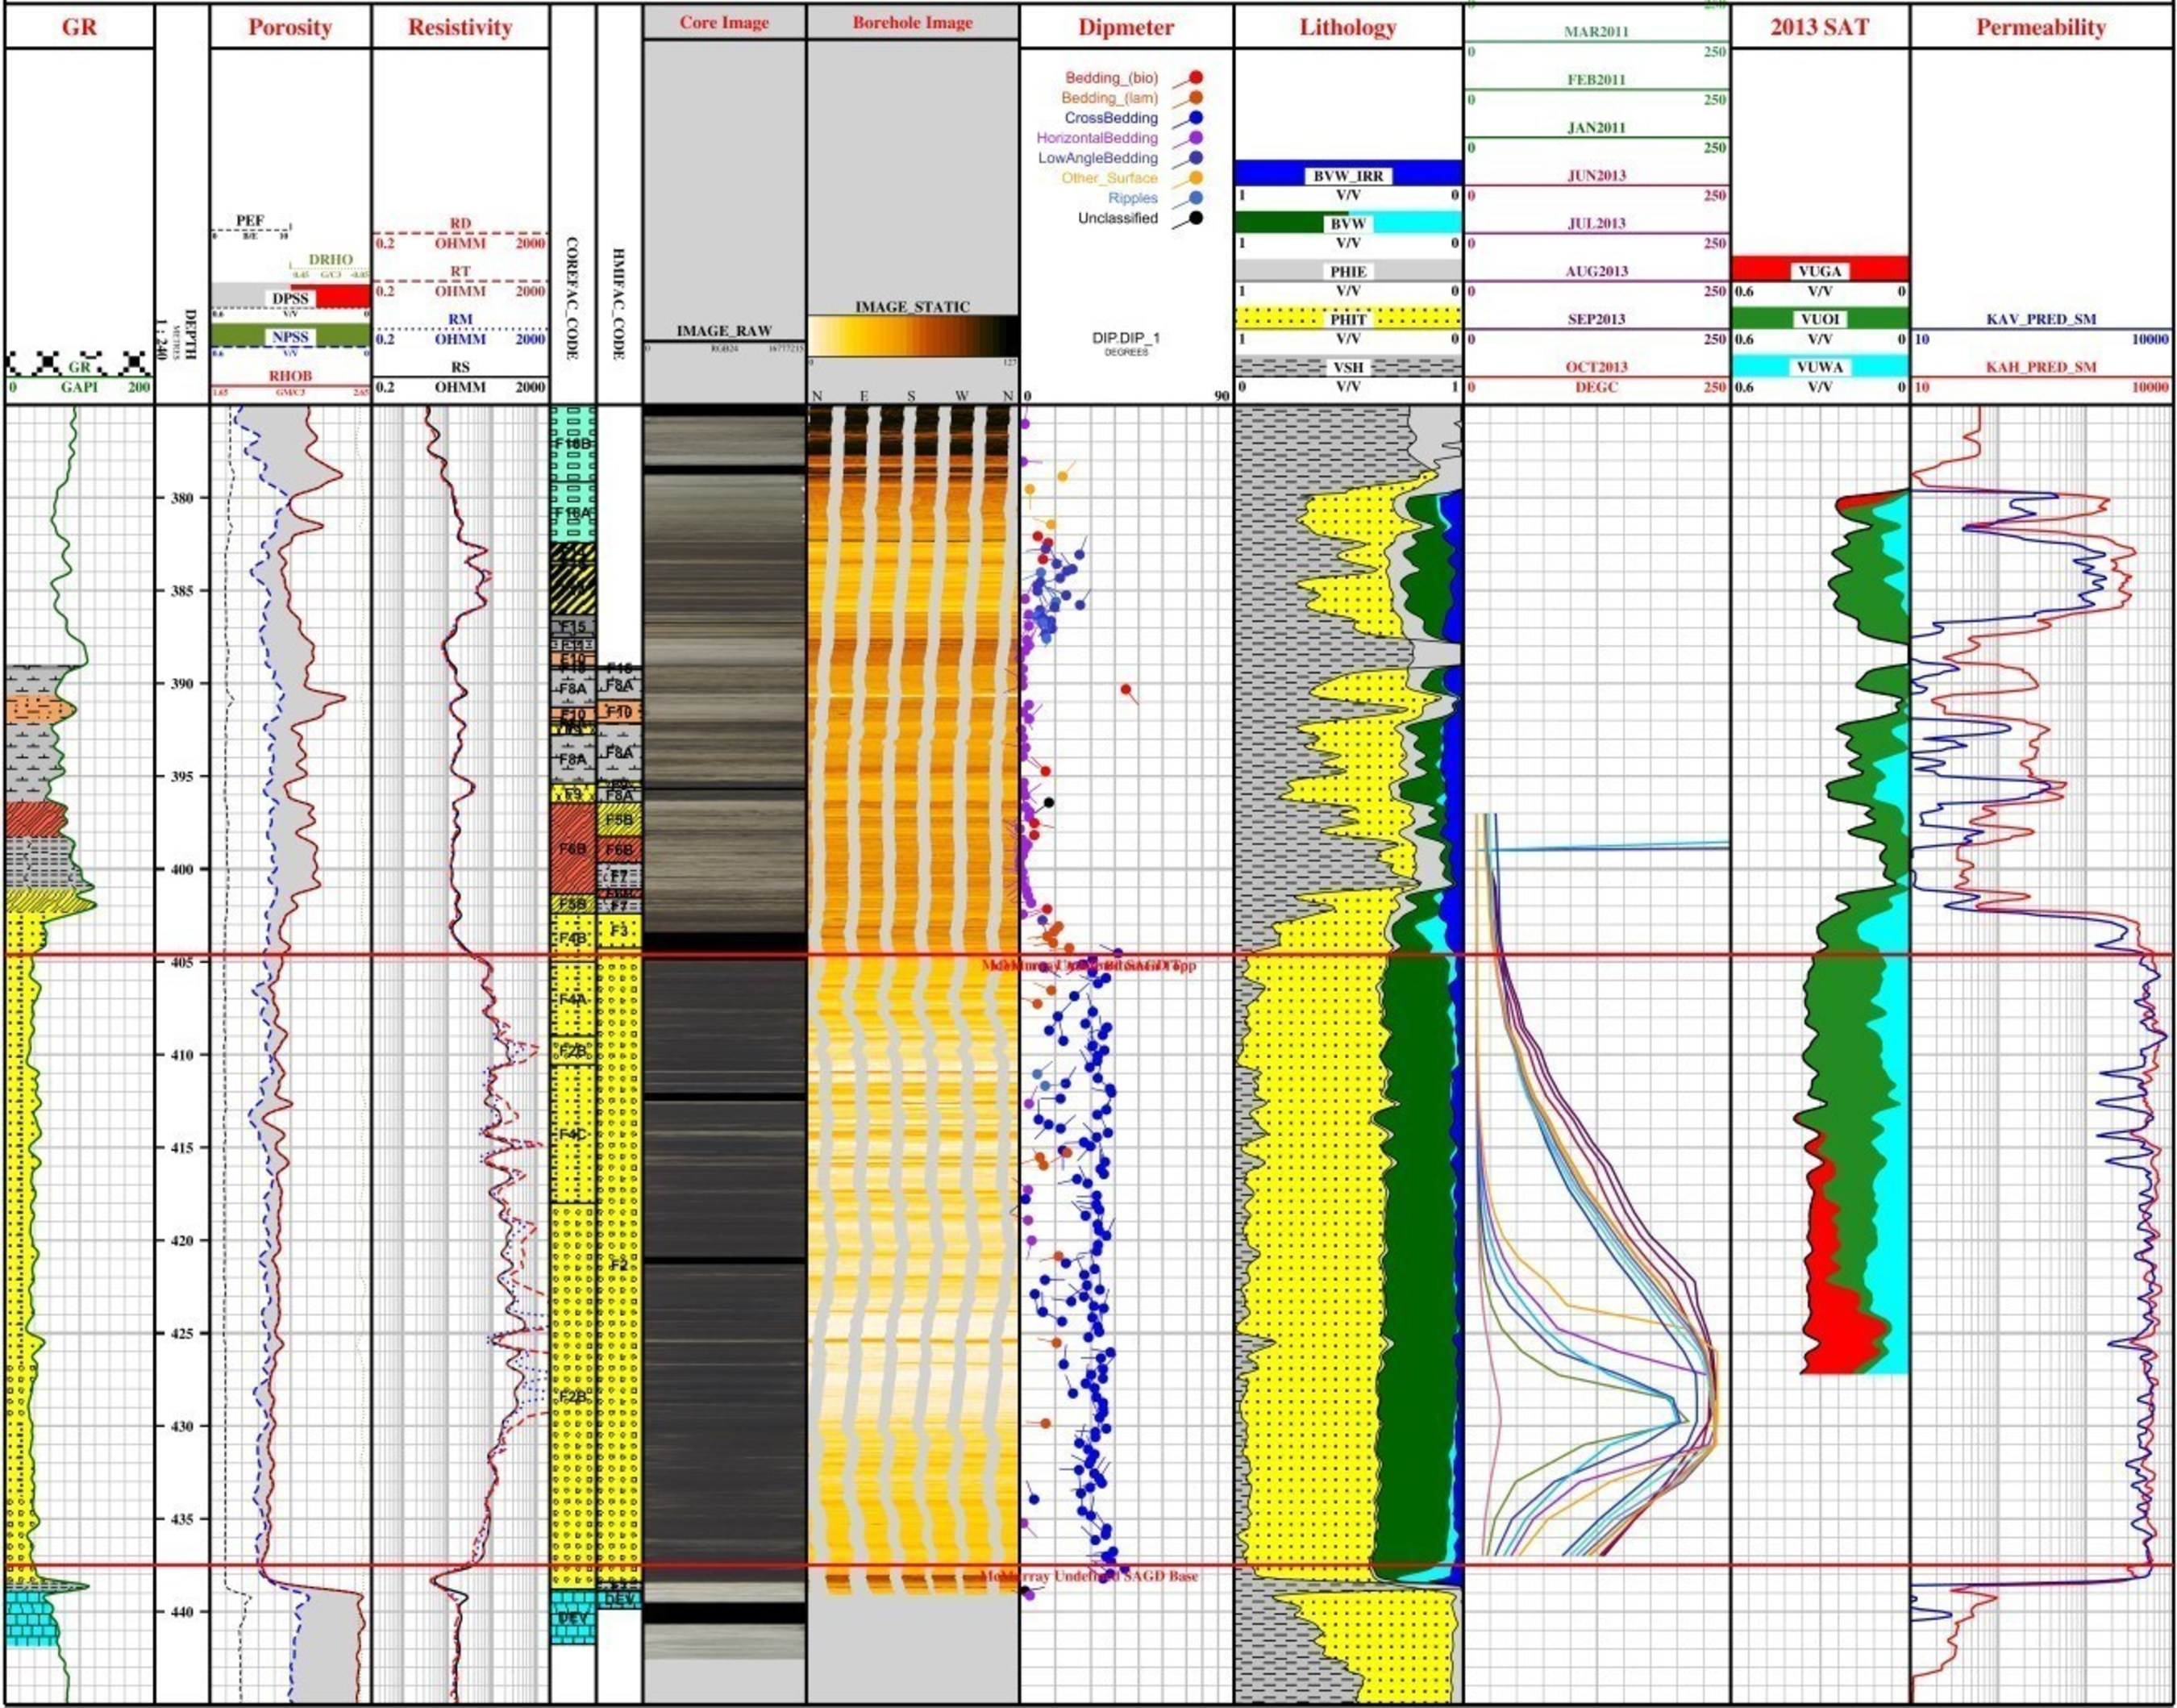 Seamless integration of borehole image logs with other wellbore data in Geolog allows high-resolution delineation of critical reservoir features.